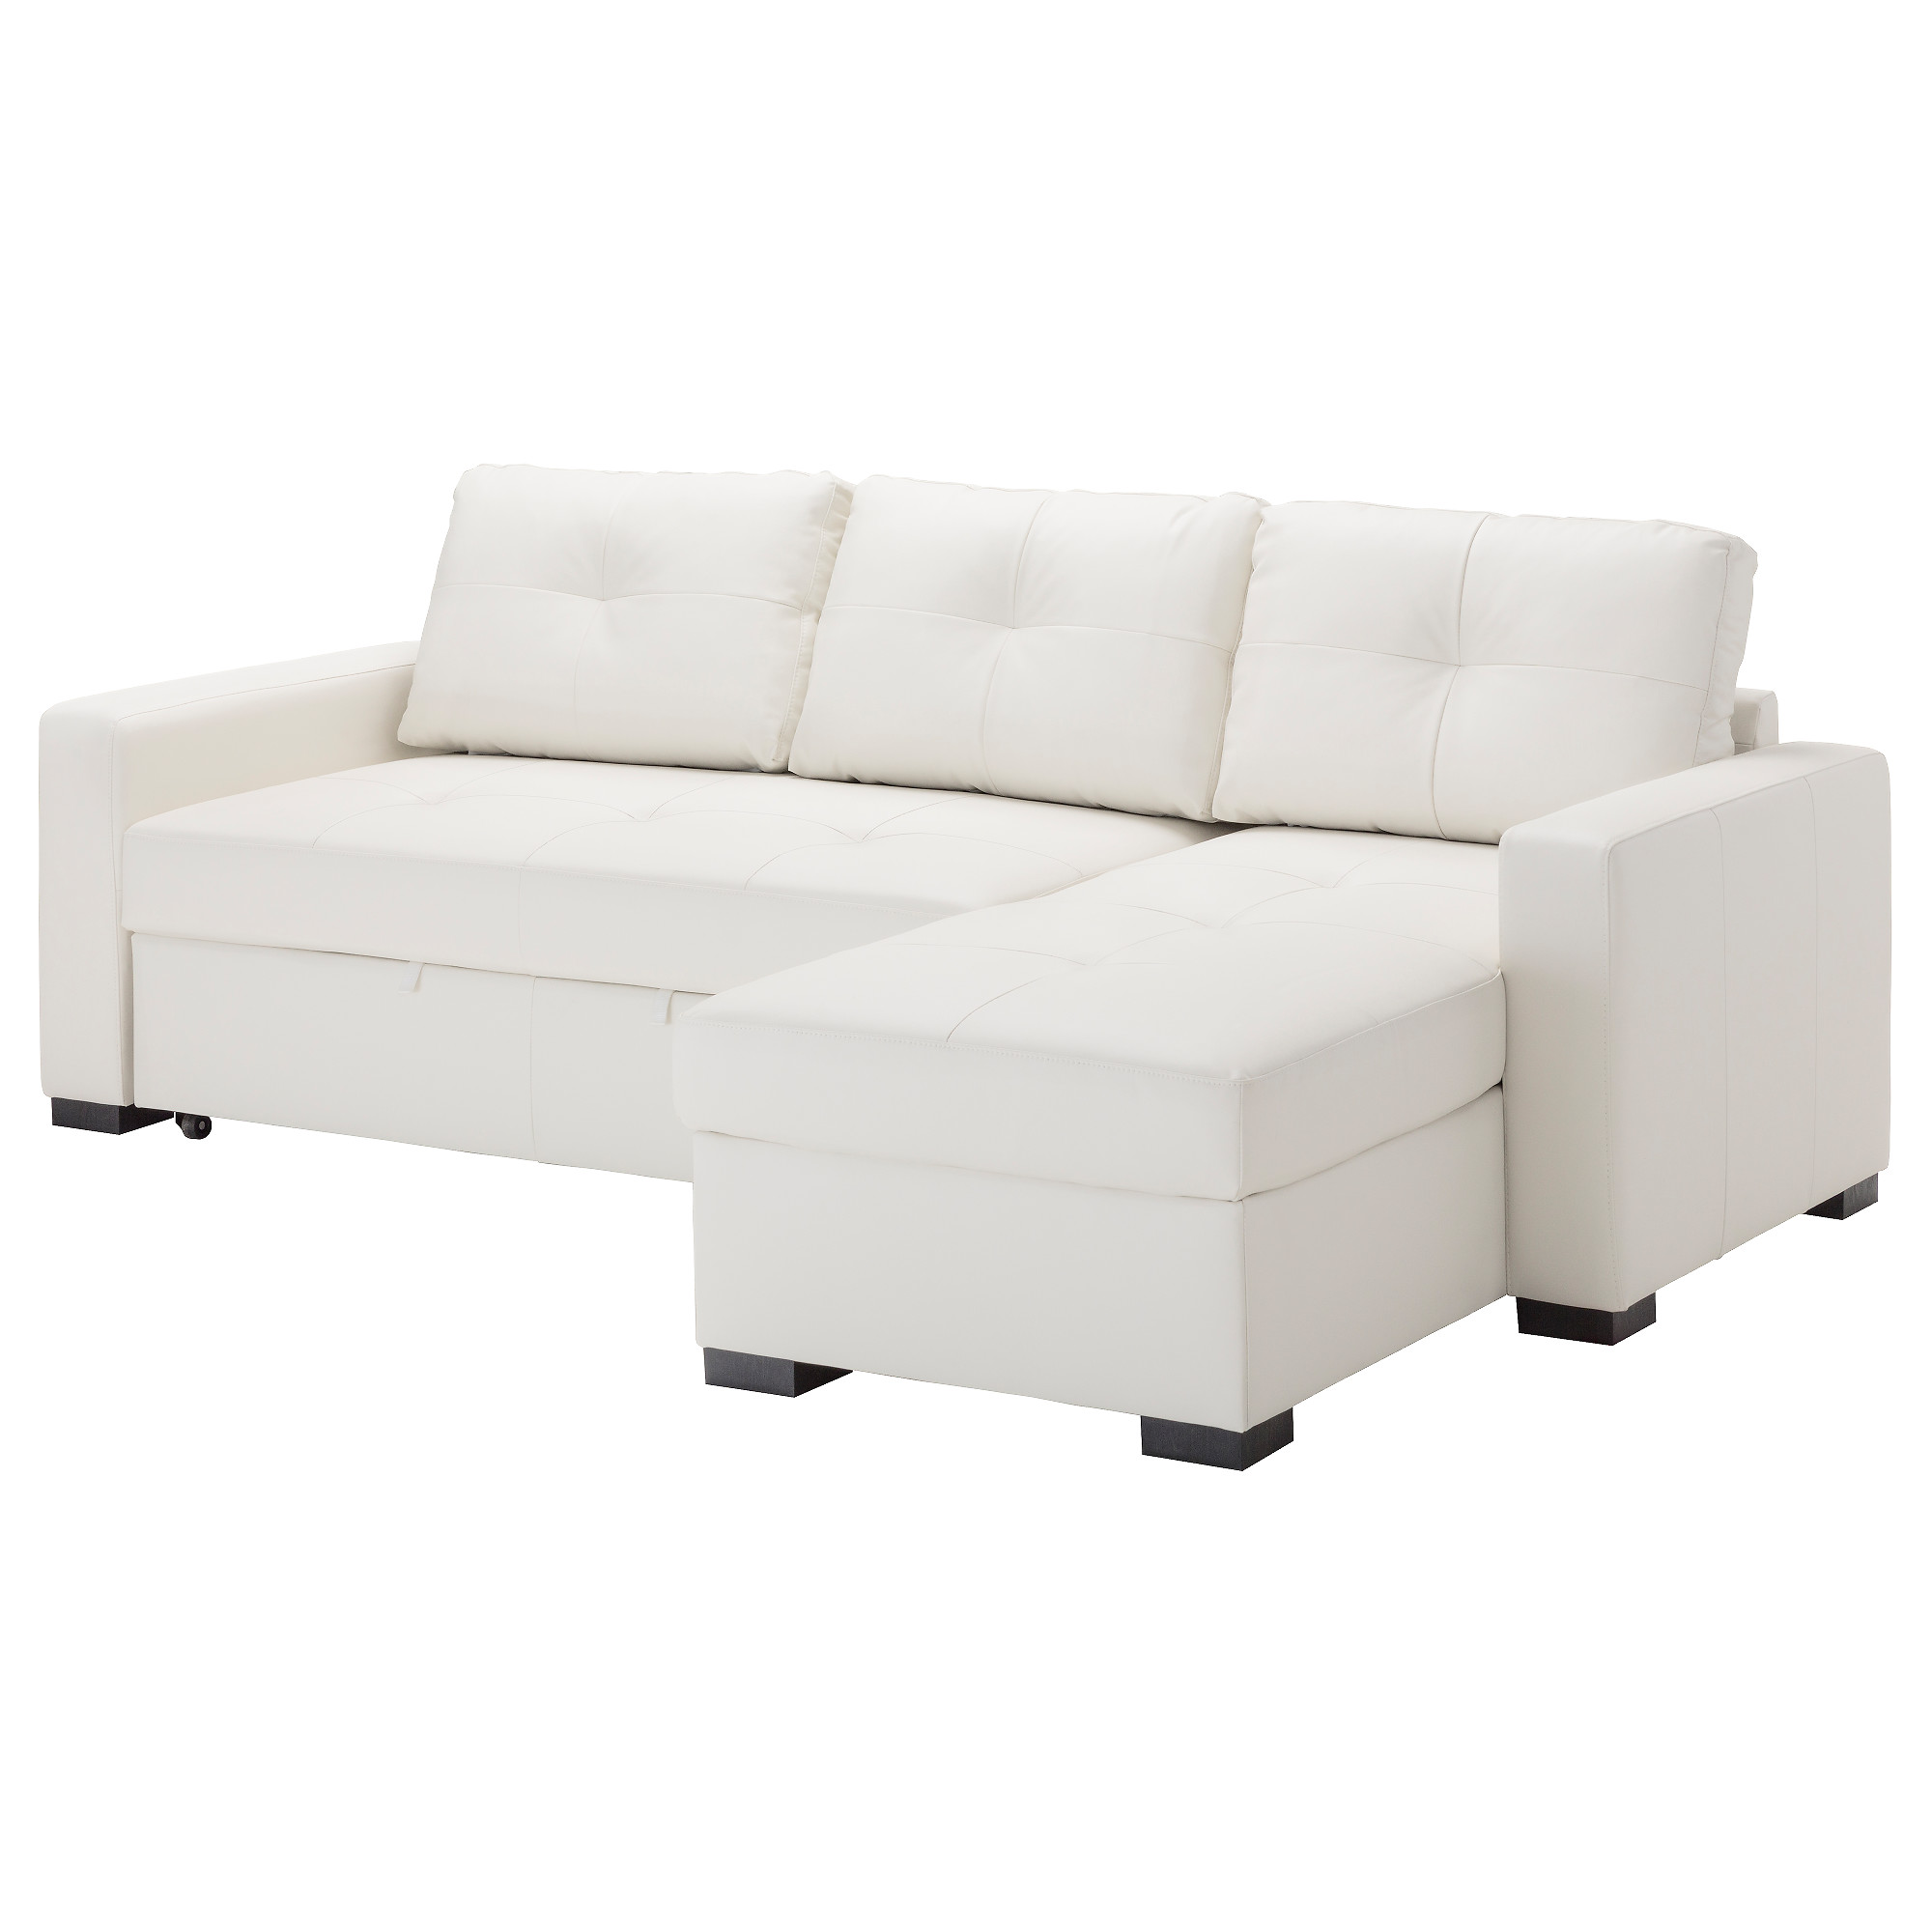 Sofa ikea  RAGUNDA Corner sofa-bed with storage - Kimstad off-white - IKEA